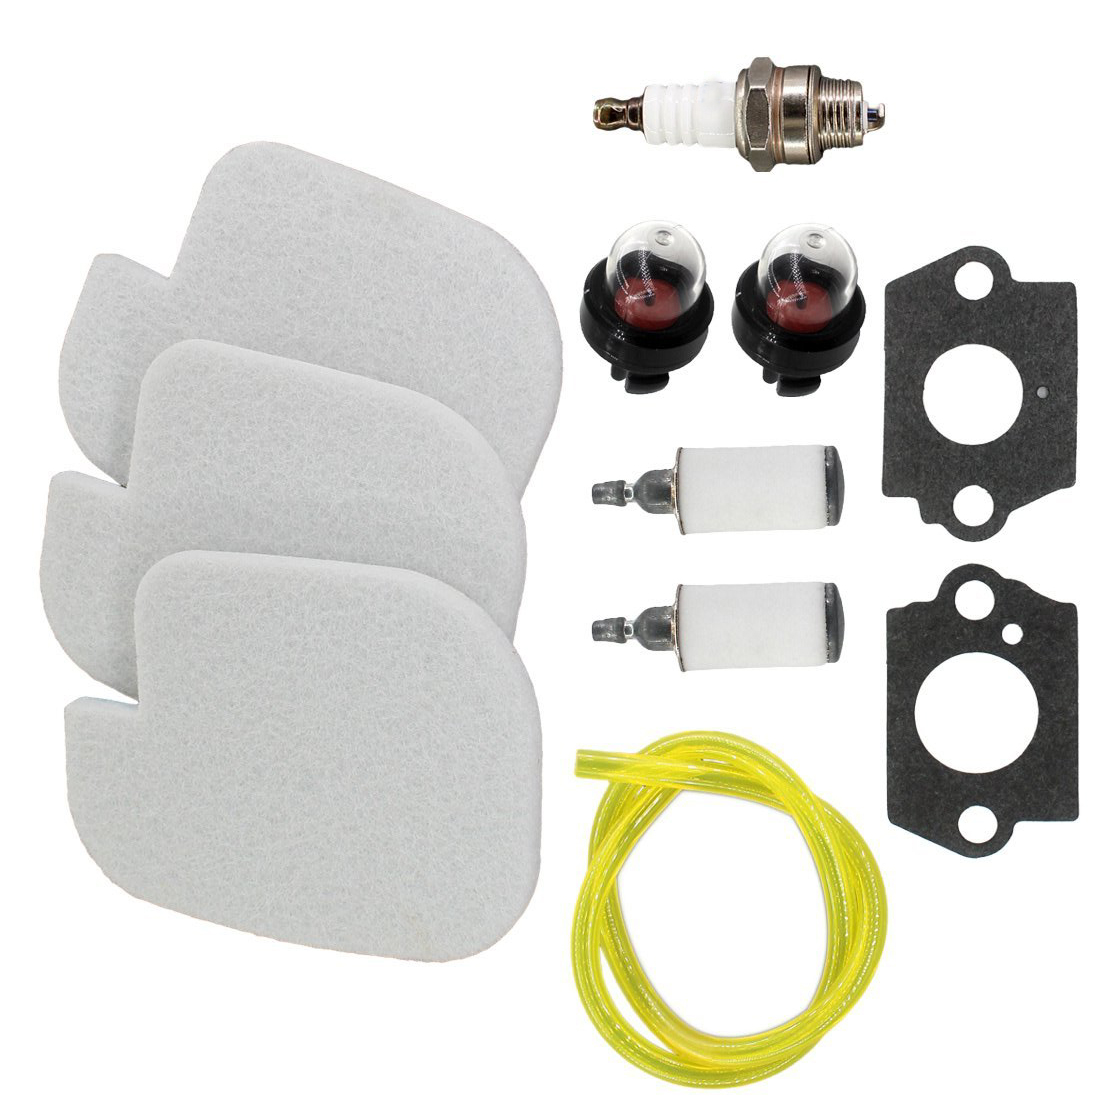 hight resolution of details about fuel oil air filter tune up kit for poulan craftsman chainsaw 530057925 s1970 us